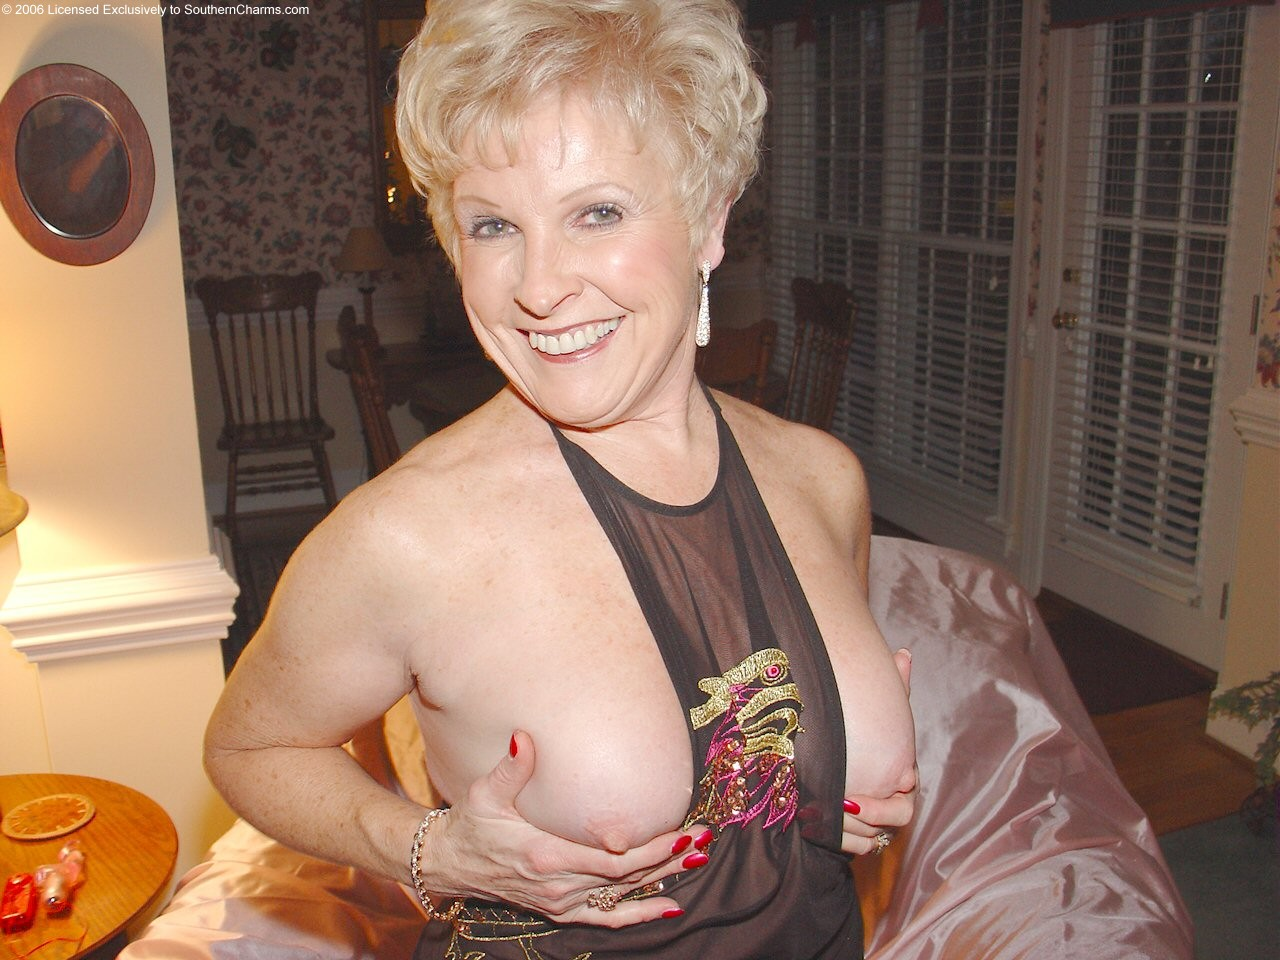 Excellent milf mature pics jewell mrs confirm. join told